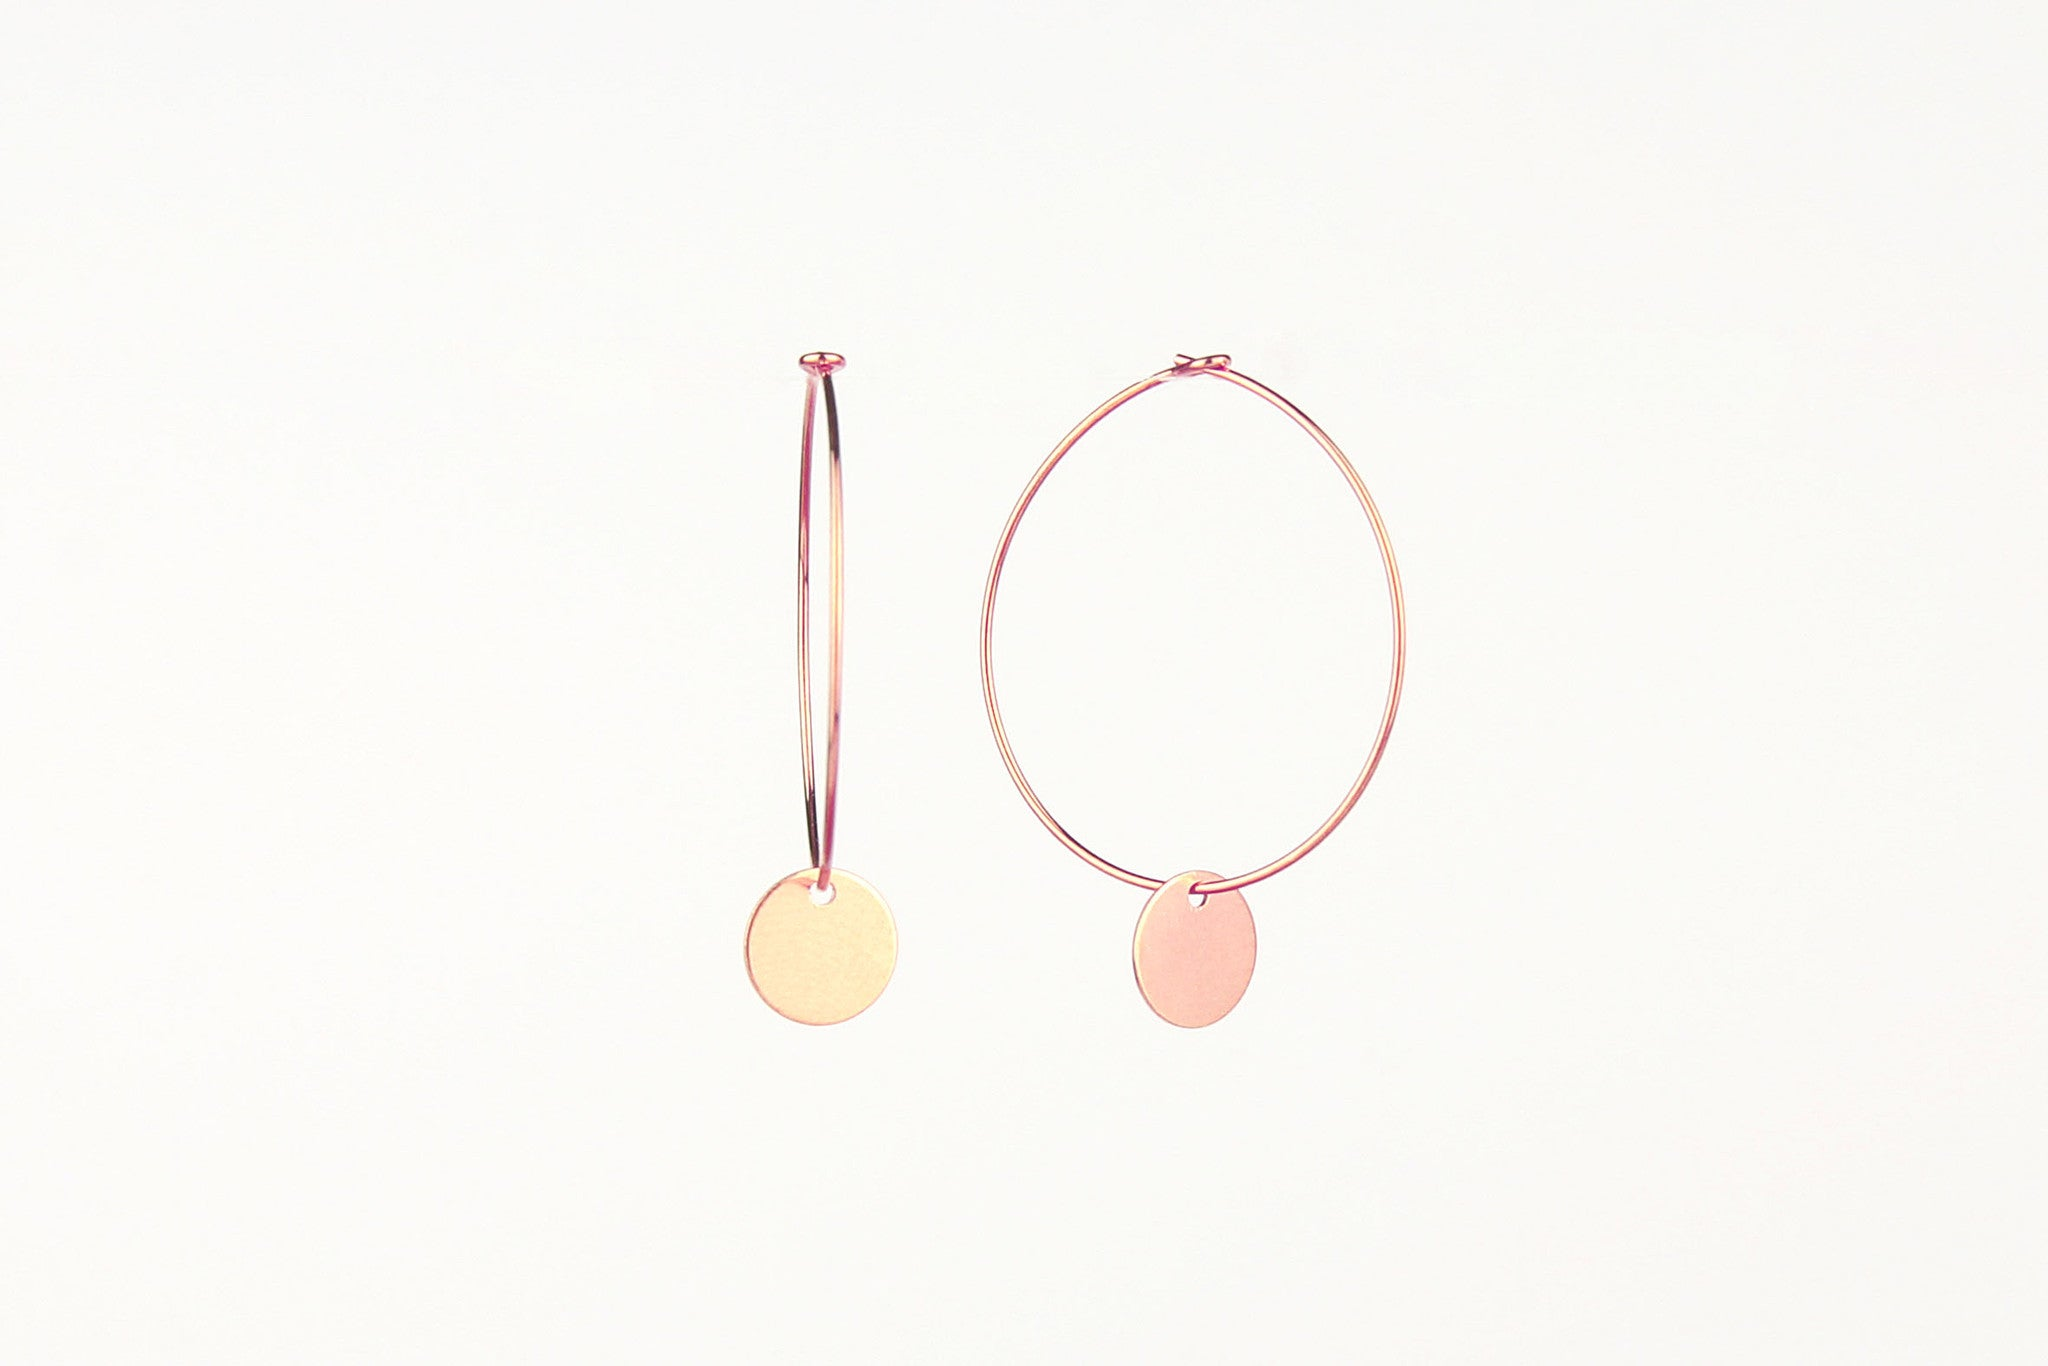 jewelberry ohrringe earrings small disc hoops rose gold plated sterling silver fine jewelry handmade with love fairtrade